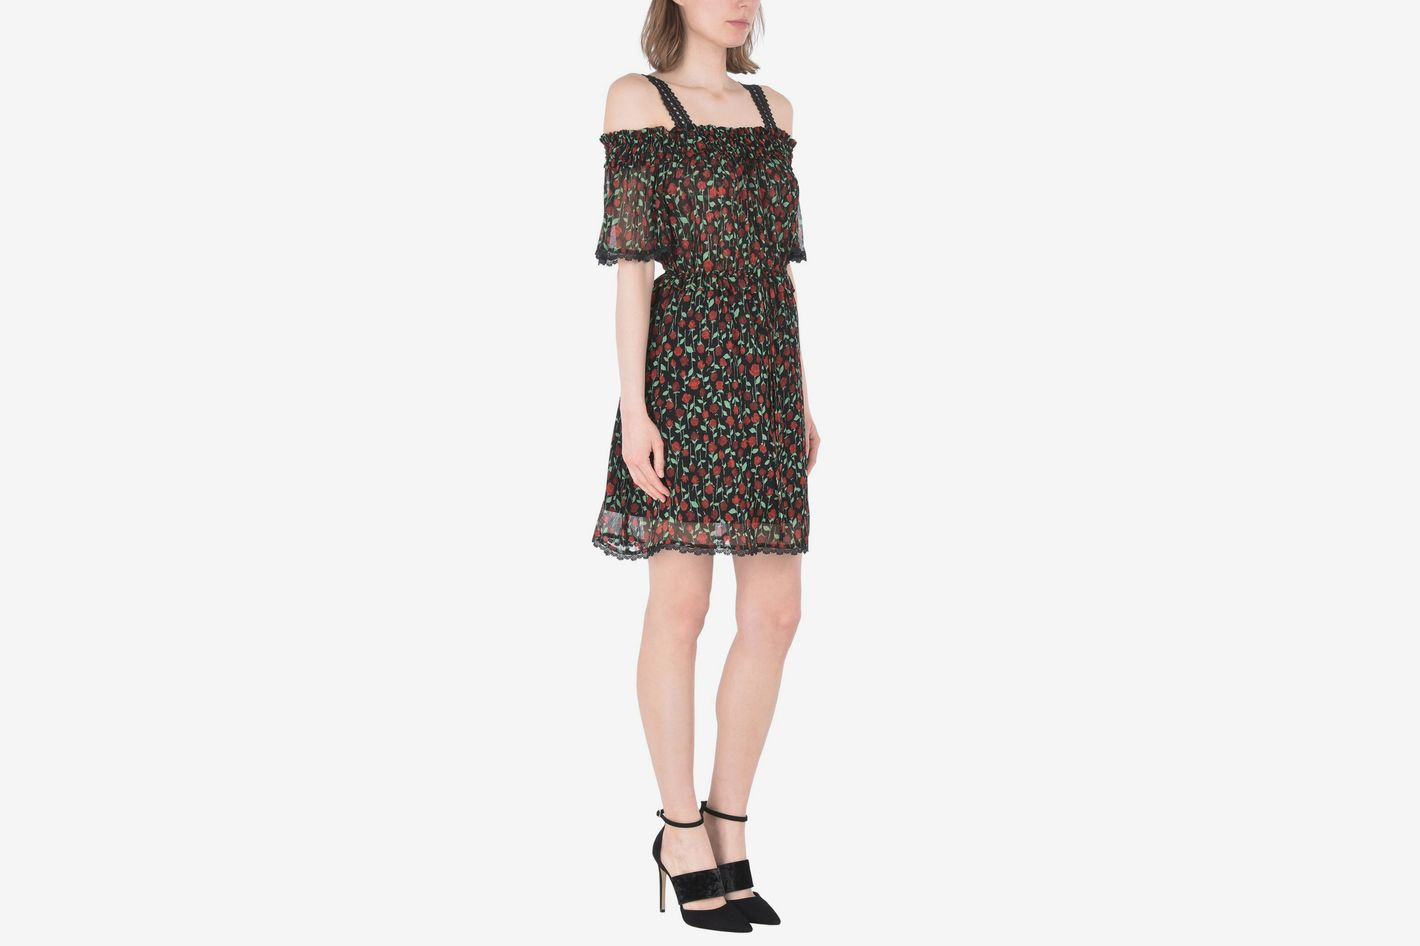 The Kooples Crinkle Viscose Dress